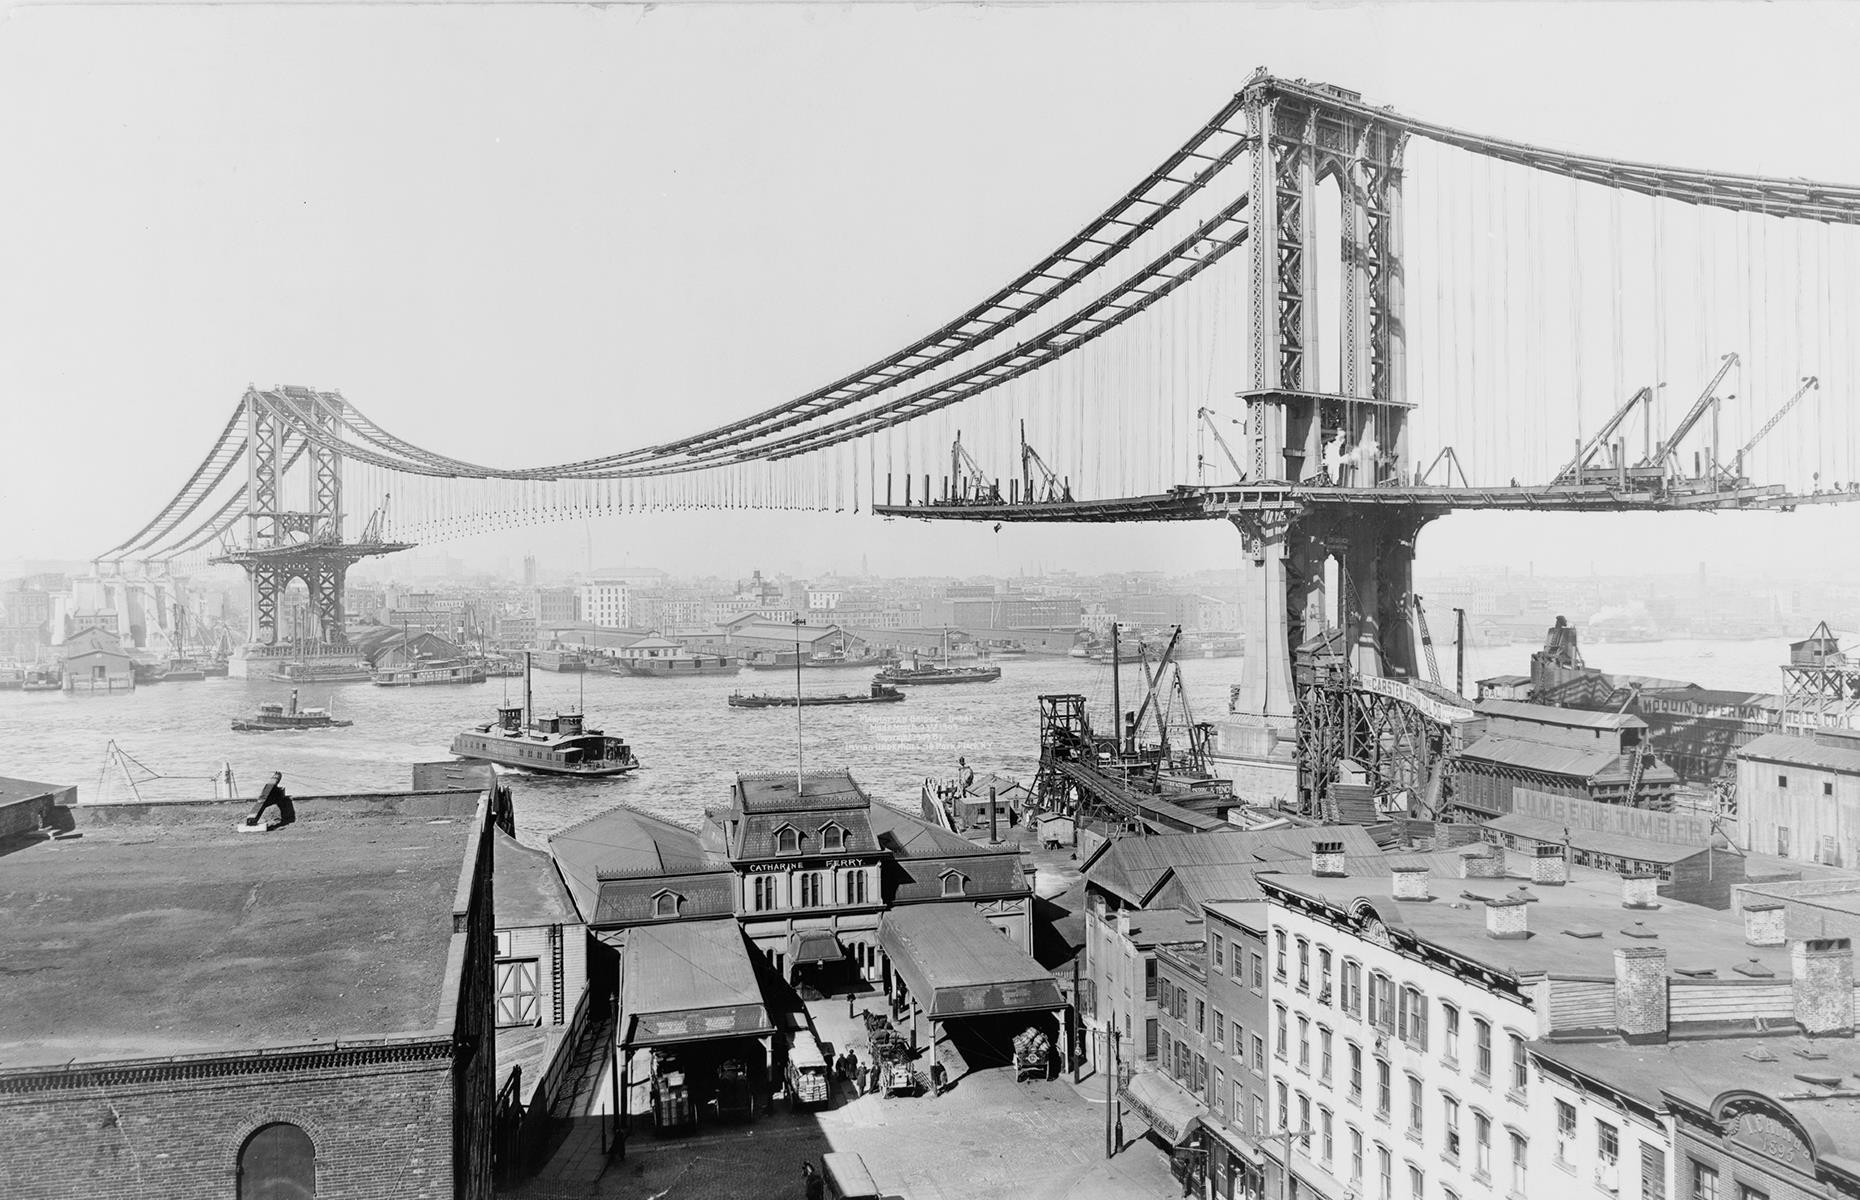 Slide 36 of 41: From one great New York landmark to another: soaring across the East River (and not to be confused with Brooklyn Bridge), this is one of the most striking crossovers in the Big Apple. Work on the suspension bridge began at the turn of the century, and it was opened to traffic in 1909. It's pictured here during the construction of its main span, which would eventually stretch out to 6,855 feet (2,089m). Find the most impressive bridge in your state here.